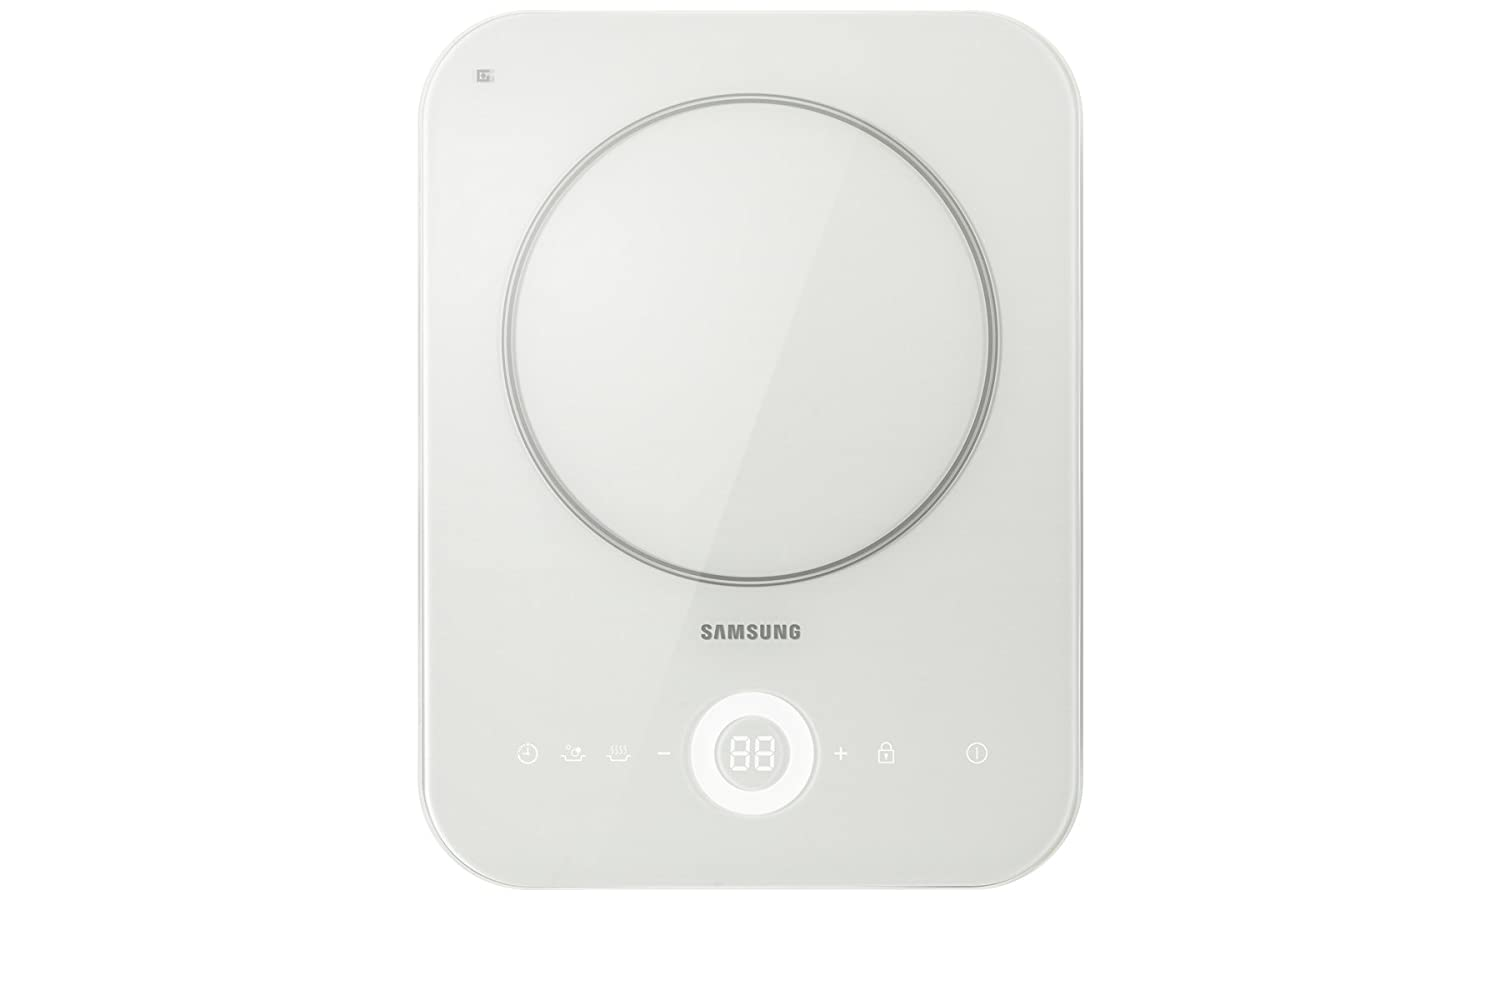 Samsung Piano Cottura CTN431SC0W: Amazon.it: Casa e cucina